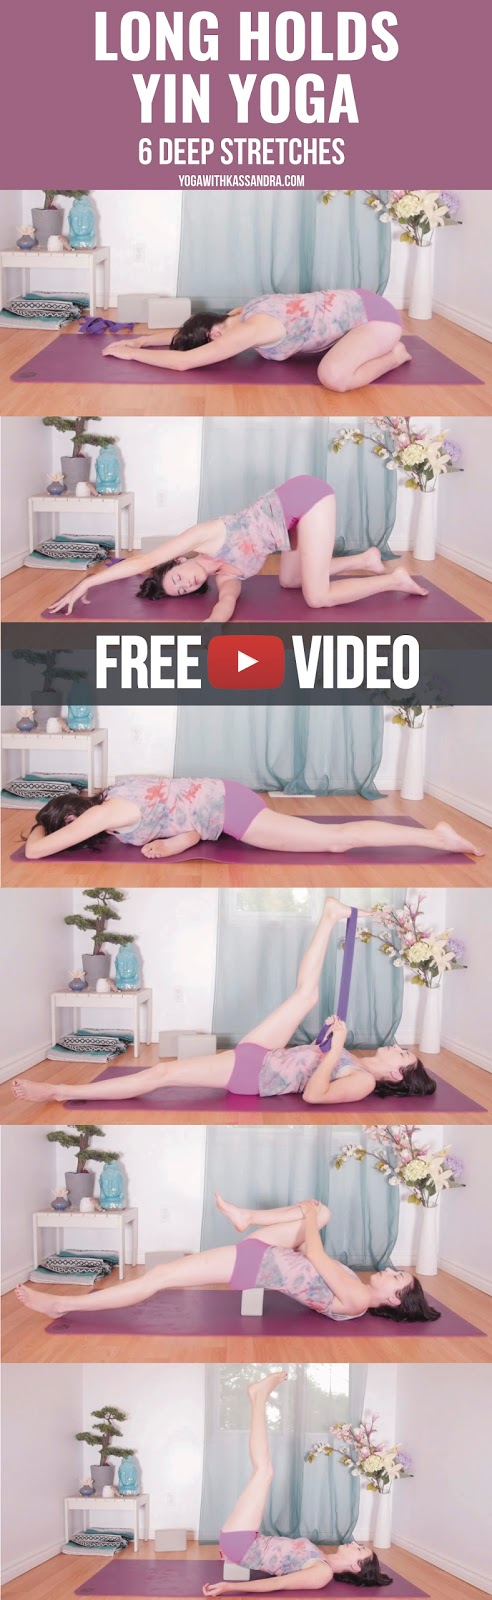 The people (you my lovely loyal readers) have spoken and they (you) want longer Yin Yoga classes! So I bring you this introspective and meditative long hold practice. These 6 poses are held for five minutes a piece, in each variation and each side when applicable. This length of time will give the body the ability to open up slowly on its own, to get you deeper into the pose without passing your edge (start shy of your full extent), and increase your flexibility. As you hold each posture, bring your awareness to the breath, and keep the mind from wandering. Holds of this length are better suited to someone who is familiar with practicing Yin Yoga. However, if you are newer to Yin and/or yoga, you are welcome to exit them sooner, when you feel you have passed your edge. As time passes you will find your body opening up and the pose becoming more comfortable and easier to hold. If this is not the case, ease off or come out of the pose.